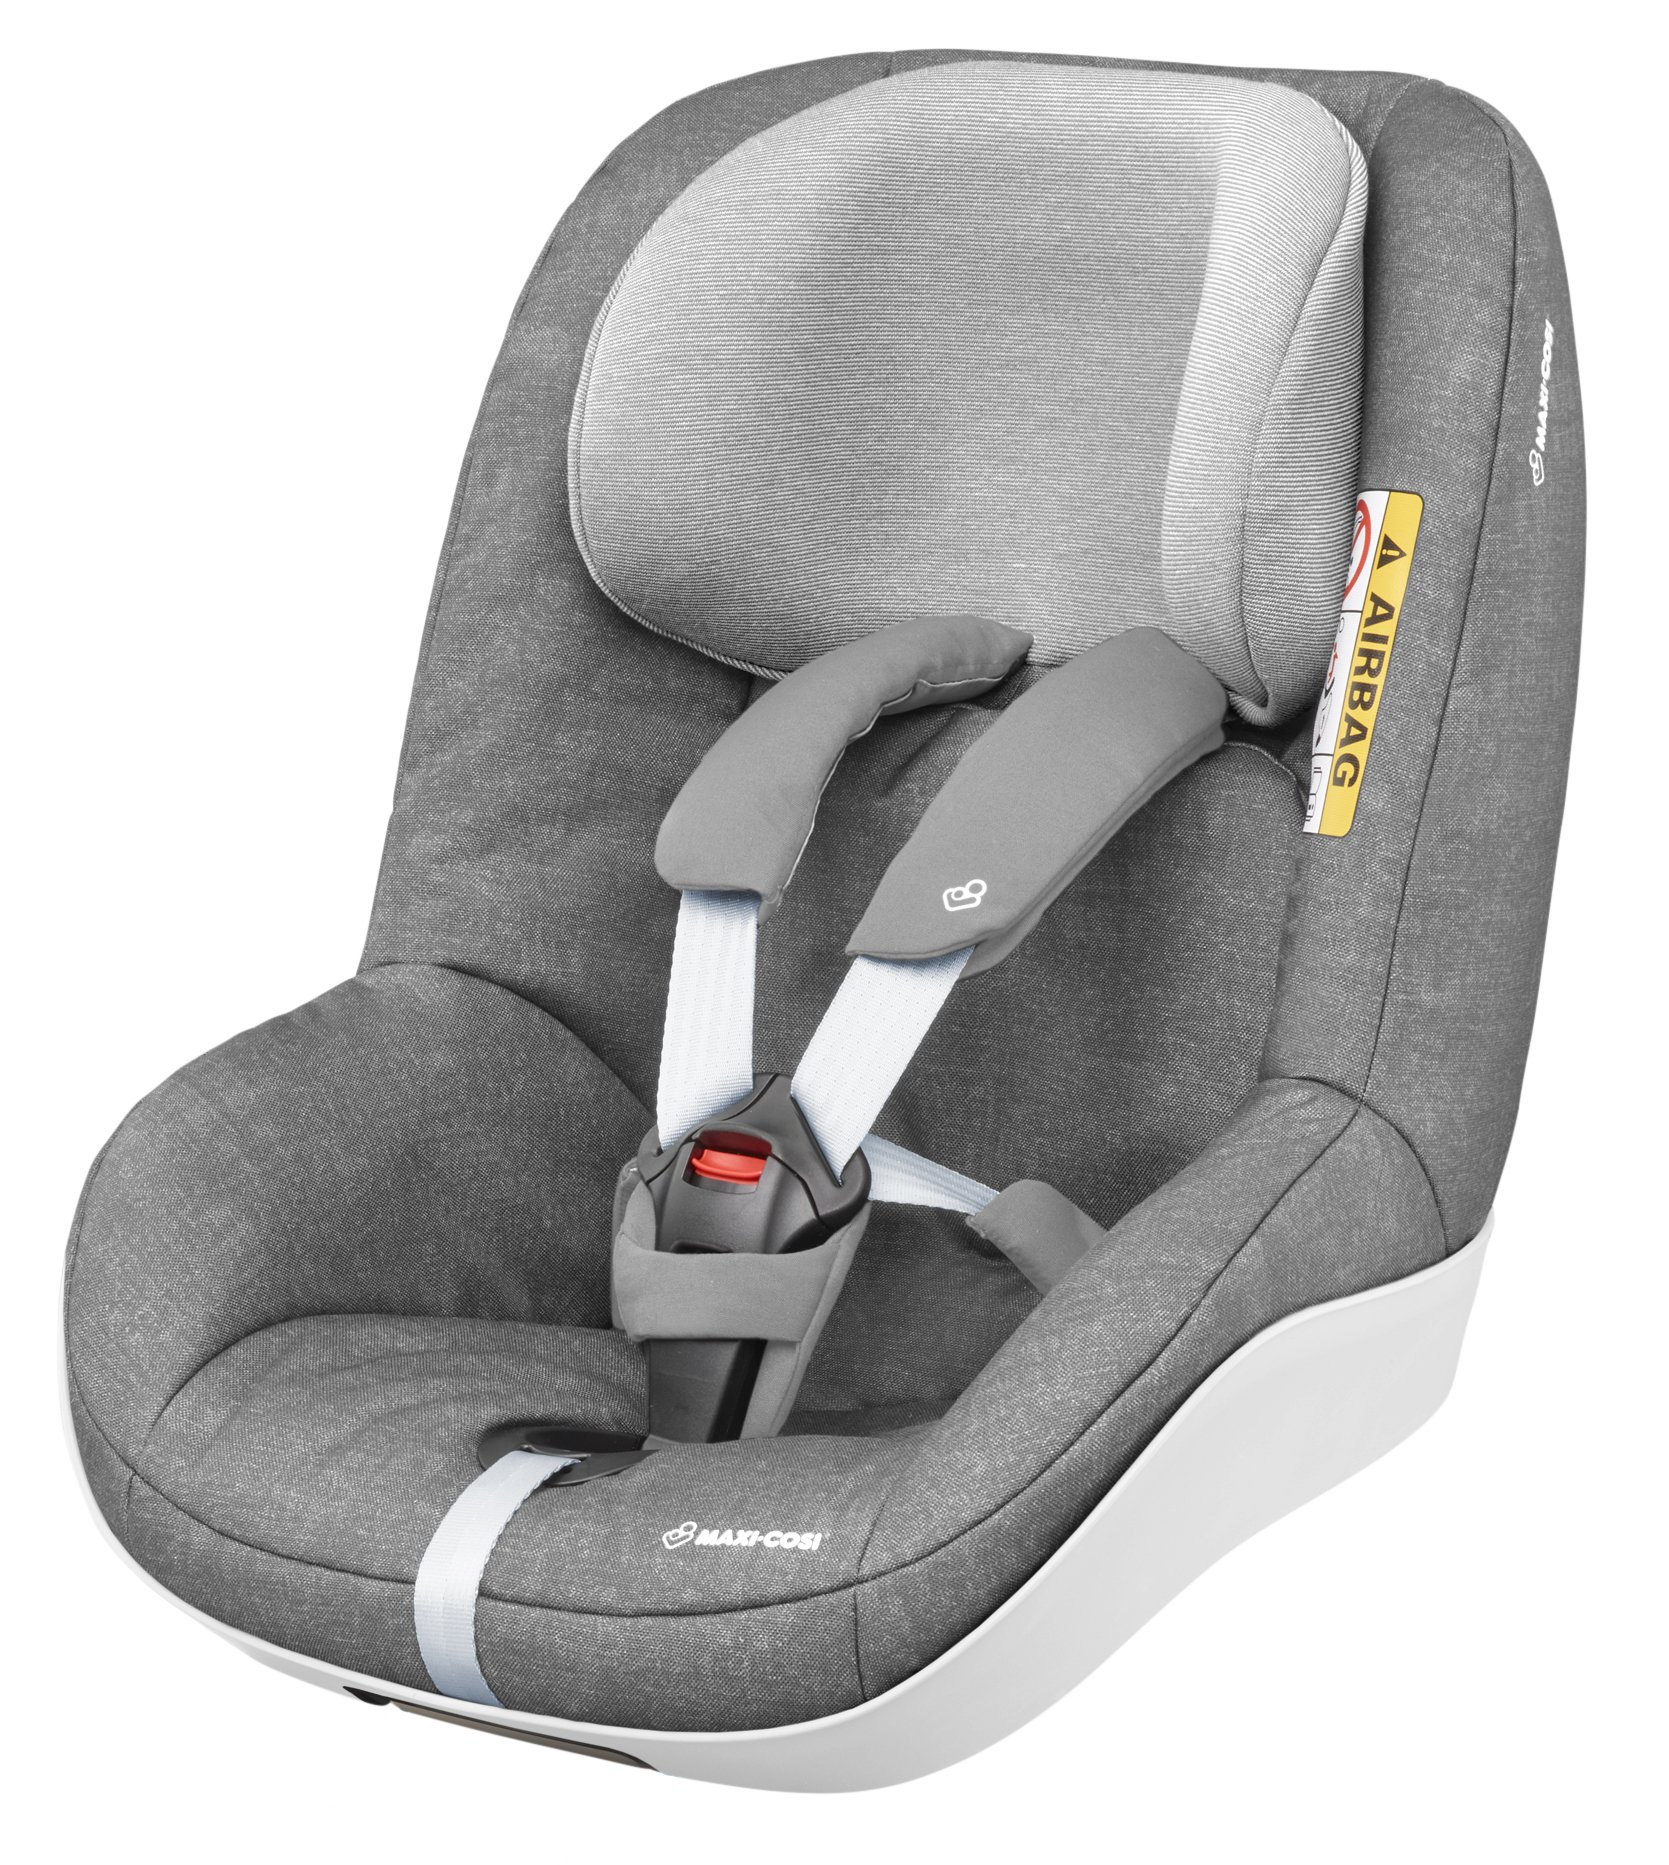 Maxi-Cosi Pearl One i-Size Toddler Car Seat Group 1, Rear-Facing Car Seat, ISOFIX, 67-105 cm, 6 Months-4 Years, Nomad Grey Maxi-Cosi Must be used with the maxi-cosi family fix one i-size base Approved according to the latest european safety standard i-size (r129) Innovative stay open harness to easily get the child in and out in seconds 2